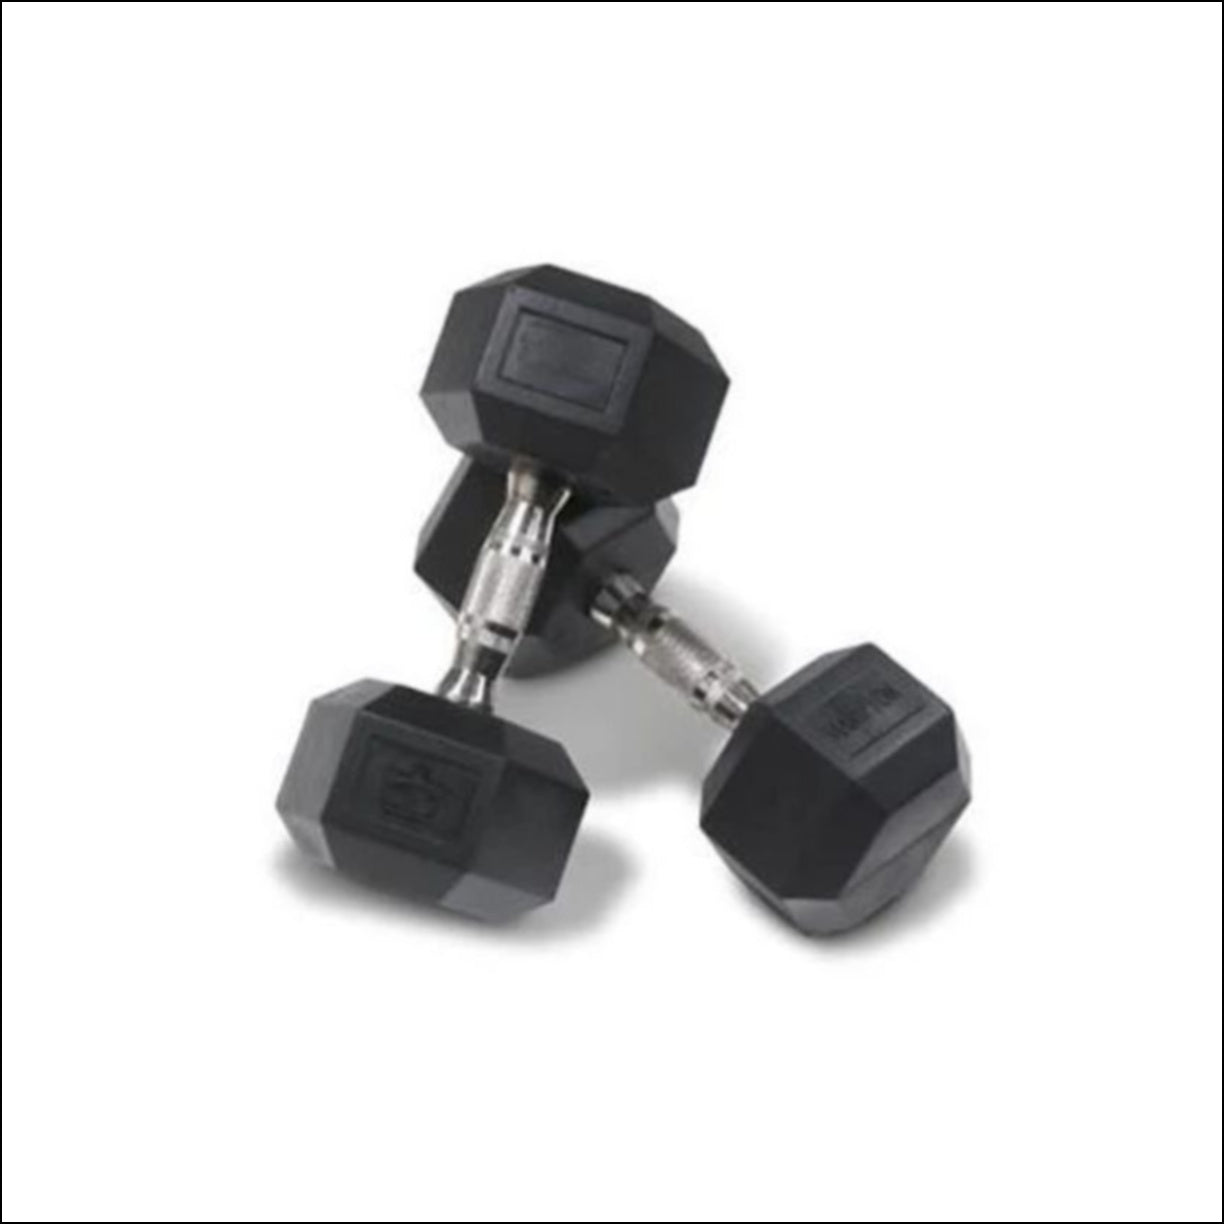 PAIR OF 2.5KG RUBBER HEX DUMBBELLS  Muscle Motion  Rubber coated hexagonal dumbbells with ergonomic handles are designed for increased comfort and improved durability. The rubber coating reduces noise improves life cycle of the product   (other finishes such as chrome and cast iron are subject to chipping and rust). Rubber coated dumbbells are also kinder on floor surfaces. The hexagonal shaped ends are designed to prevent the dumbbell from rolling on the floor or dumbbell rack.